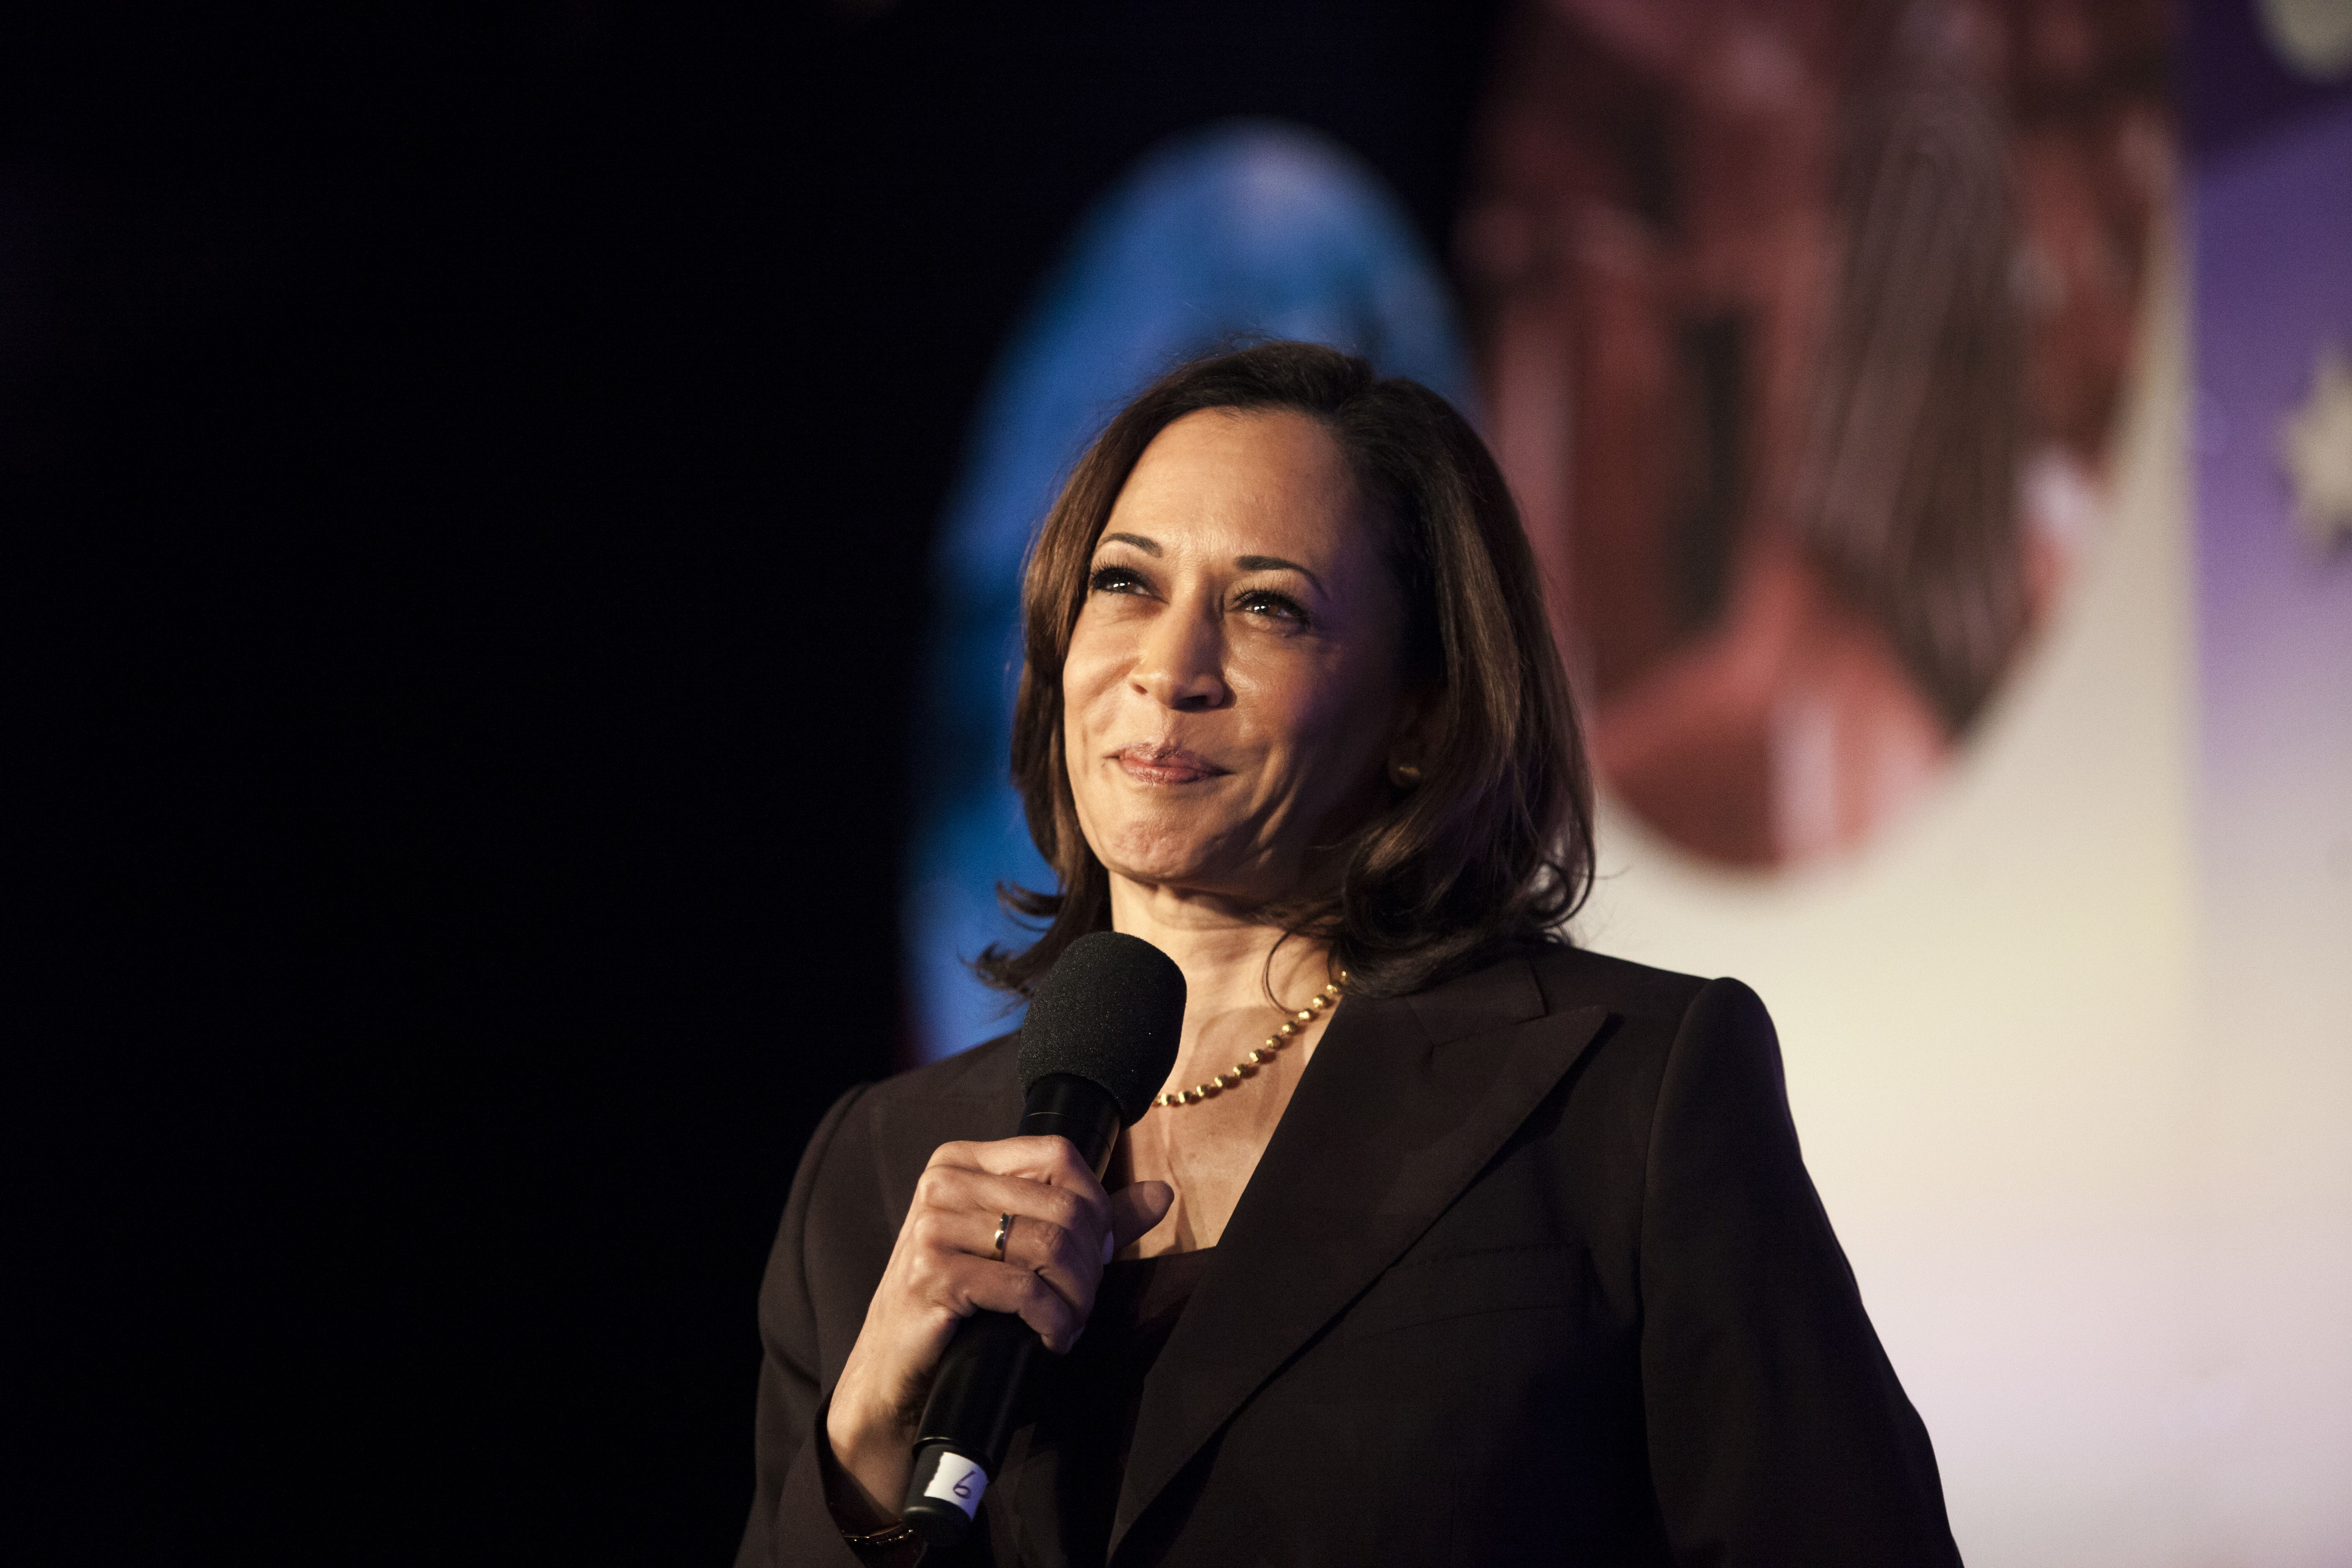 Kamala Harris Is Both A Historic And Flawed Candidate The Boston Globe